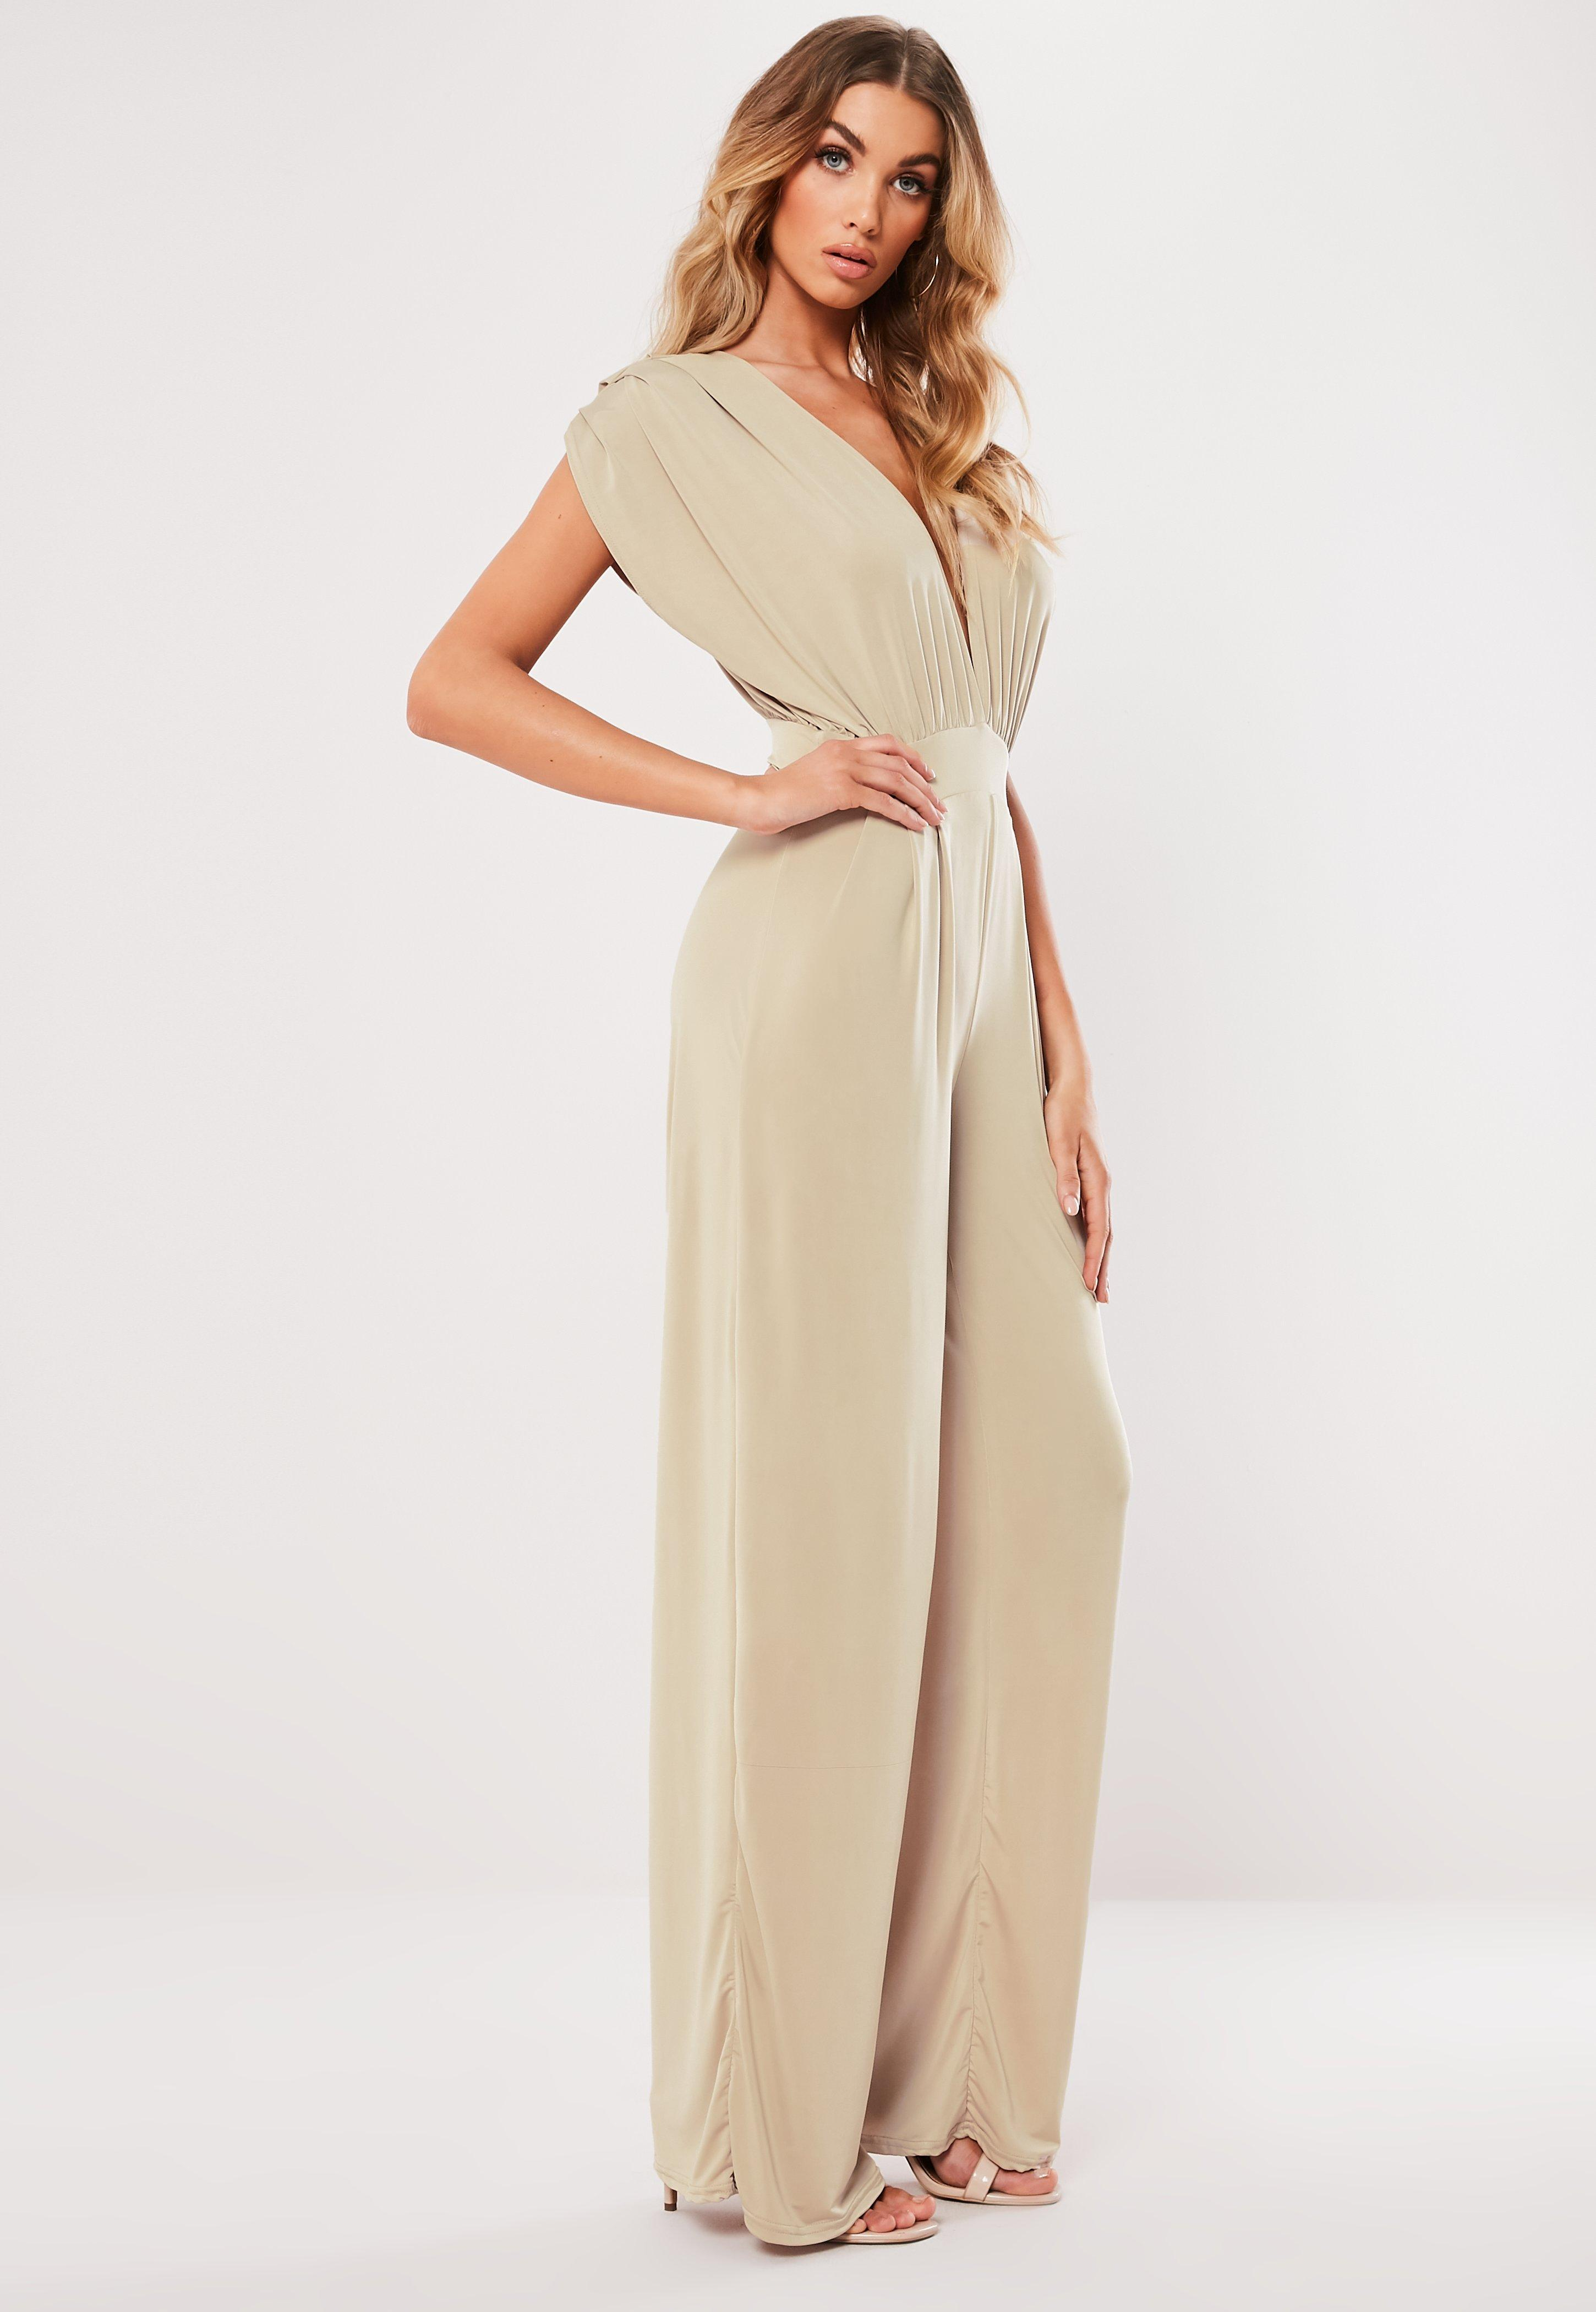 5c7de2b8b0 Lyst - Missguided Stone Slinky Plunge Jumpsuit in Natural